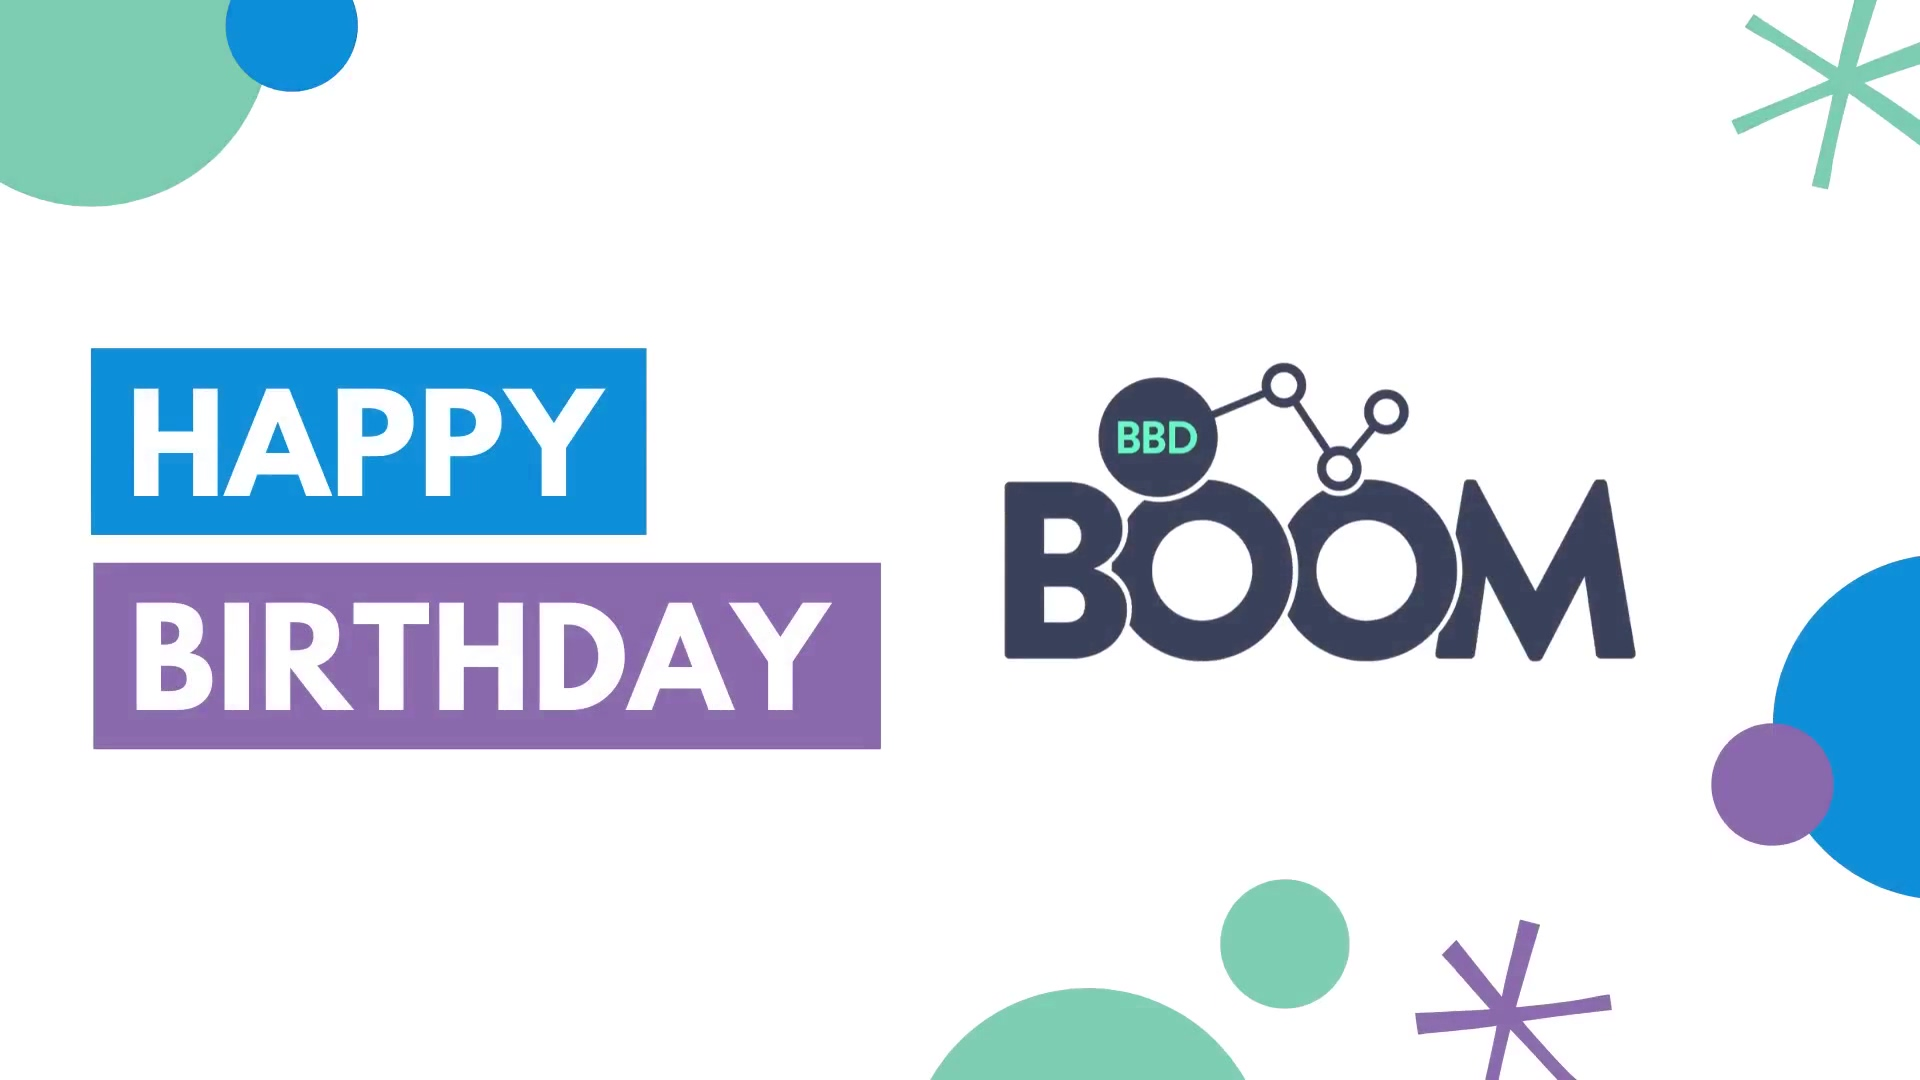 BBD Boom is now 3 years old!